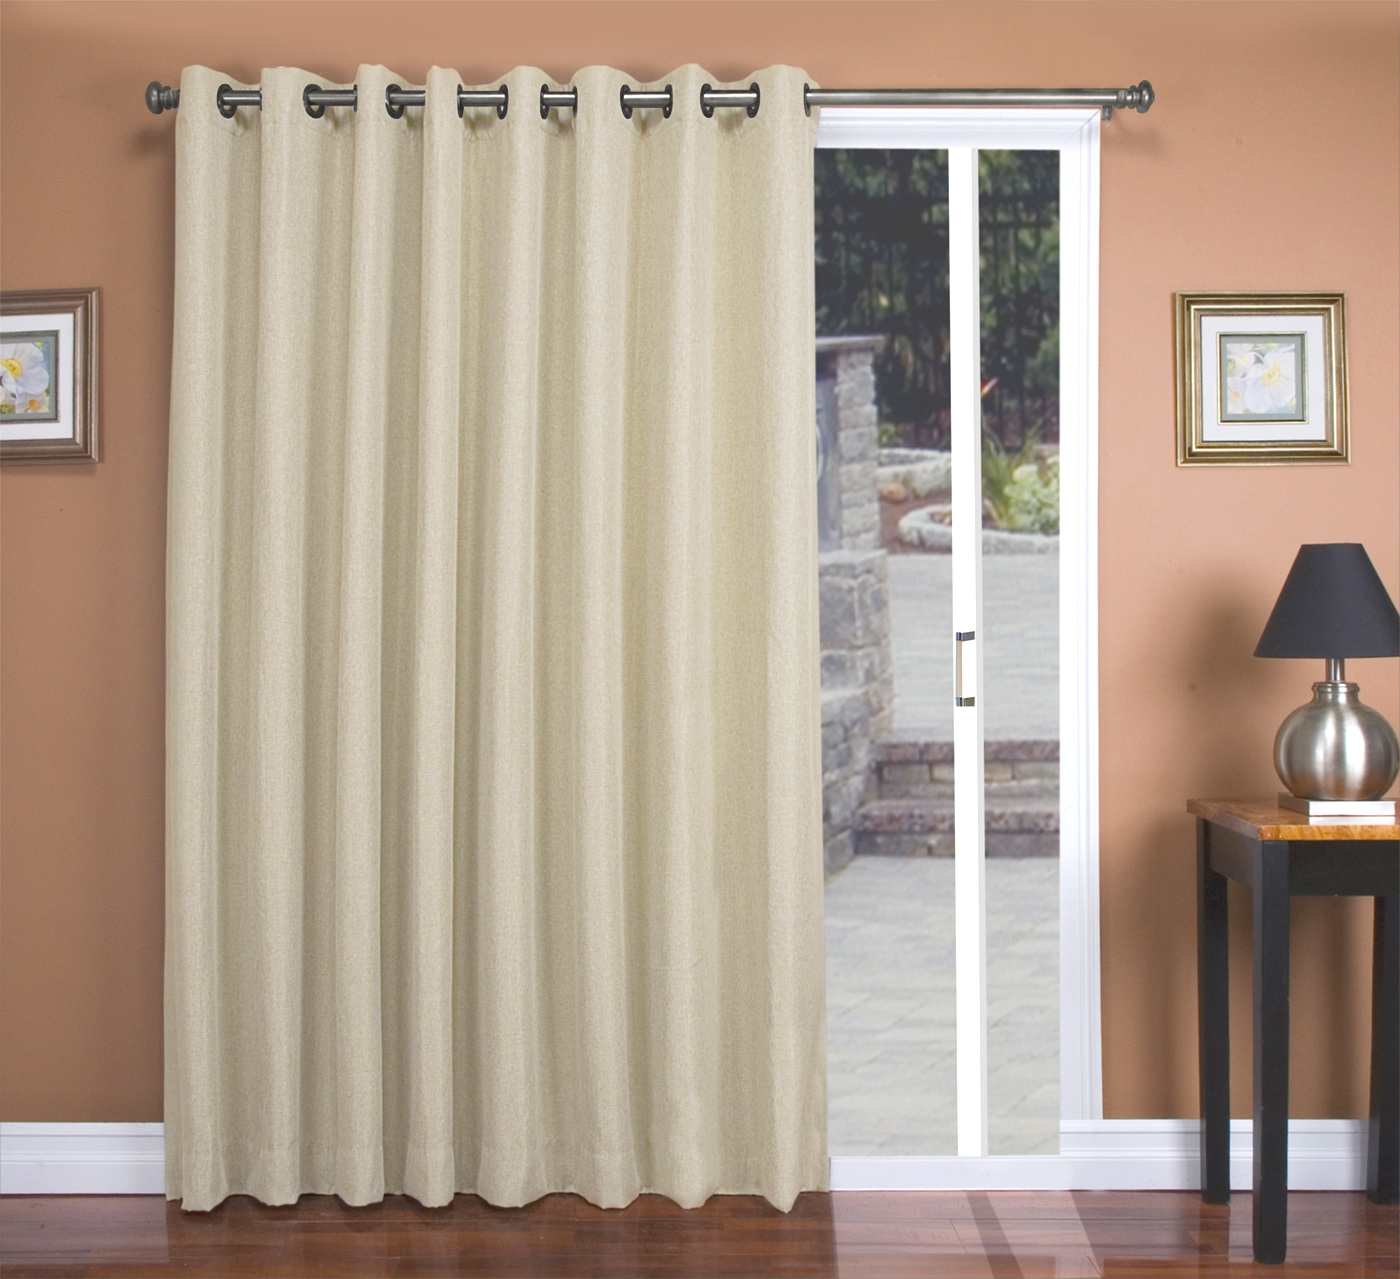 Patio Door Curtains – Thecurtainshop Throughout Patio Grommet Top Single Curtain Panels (View 20 of 20)